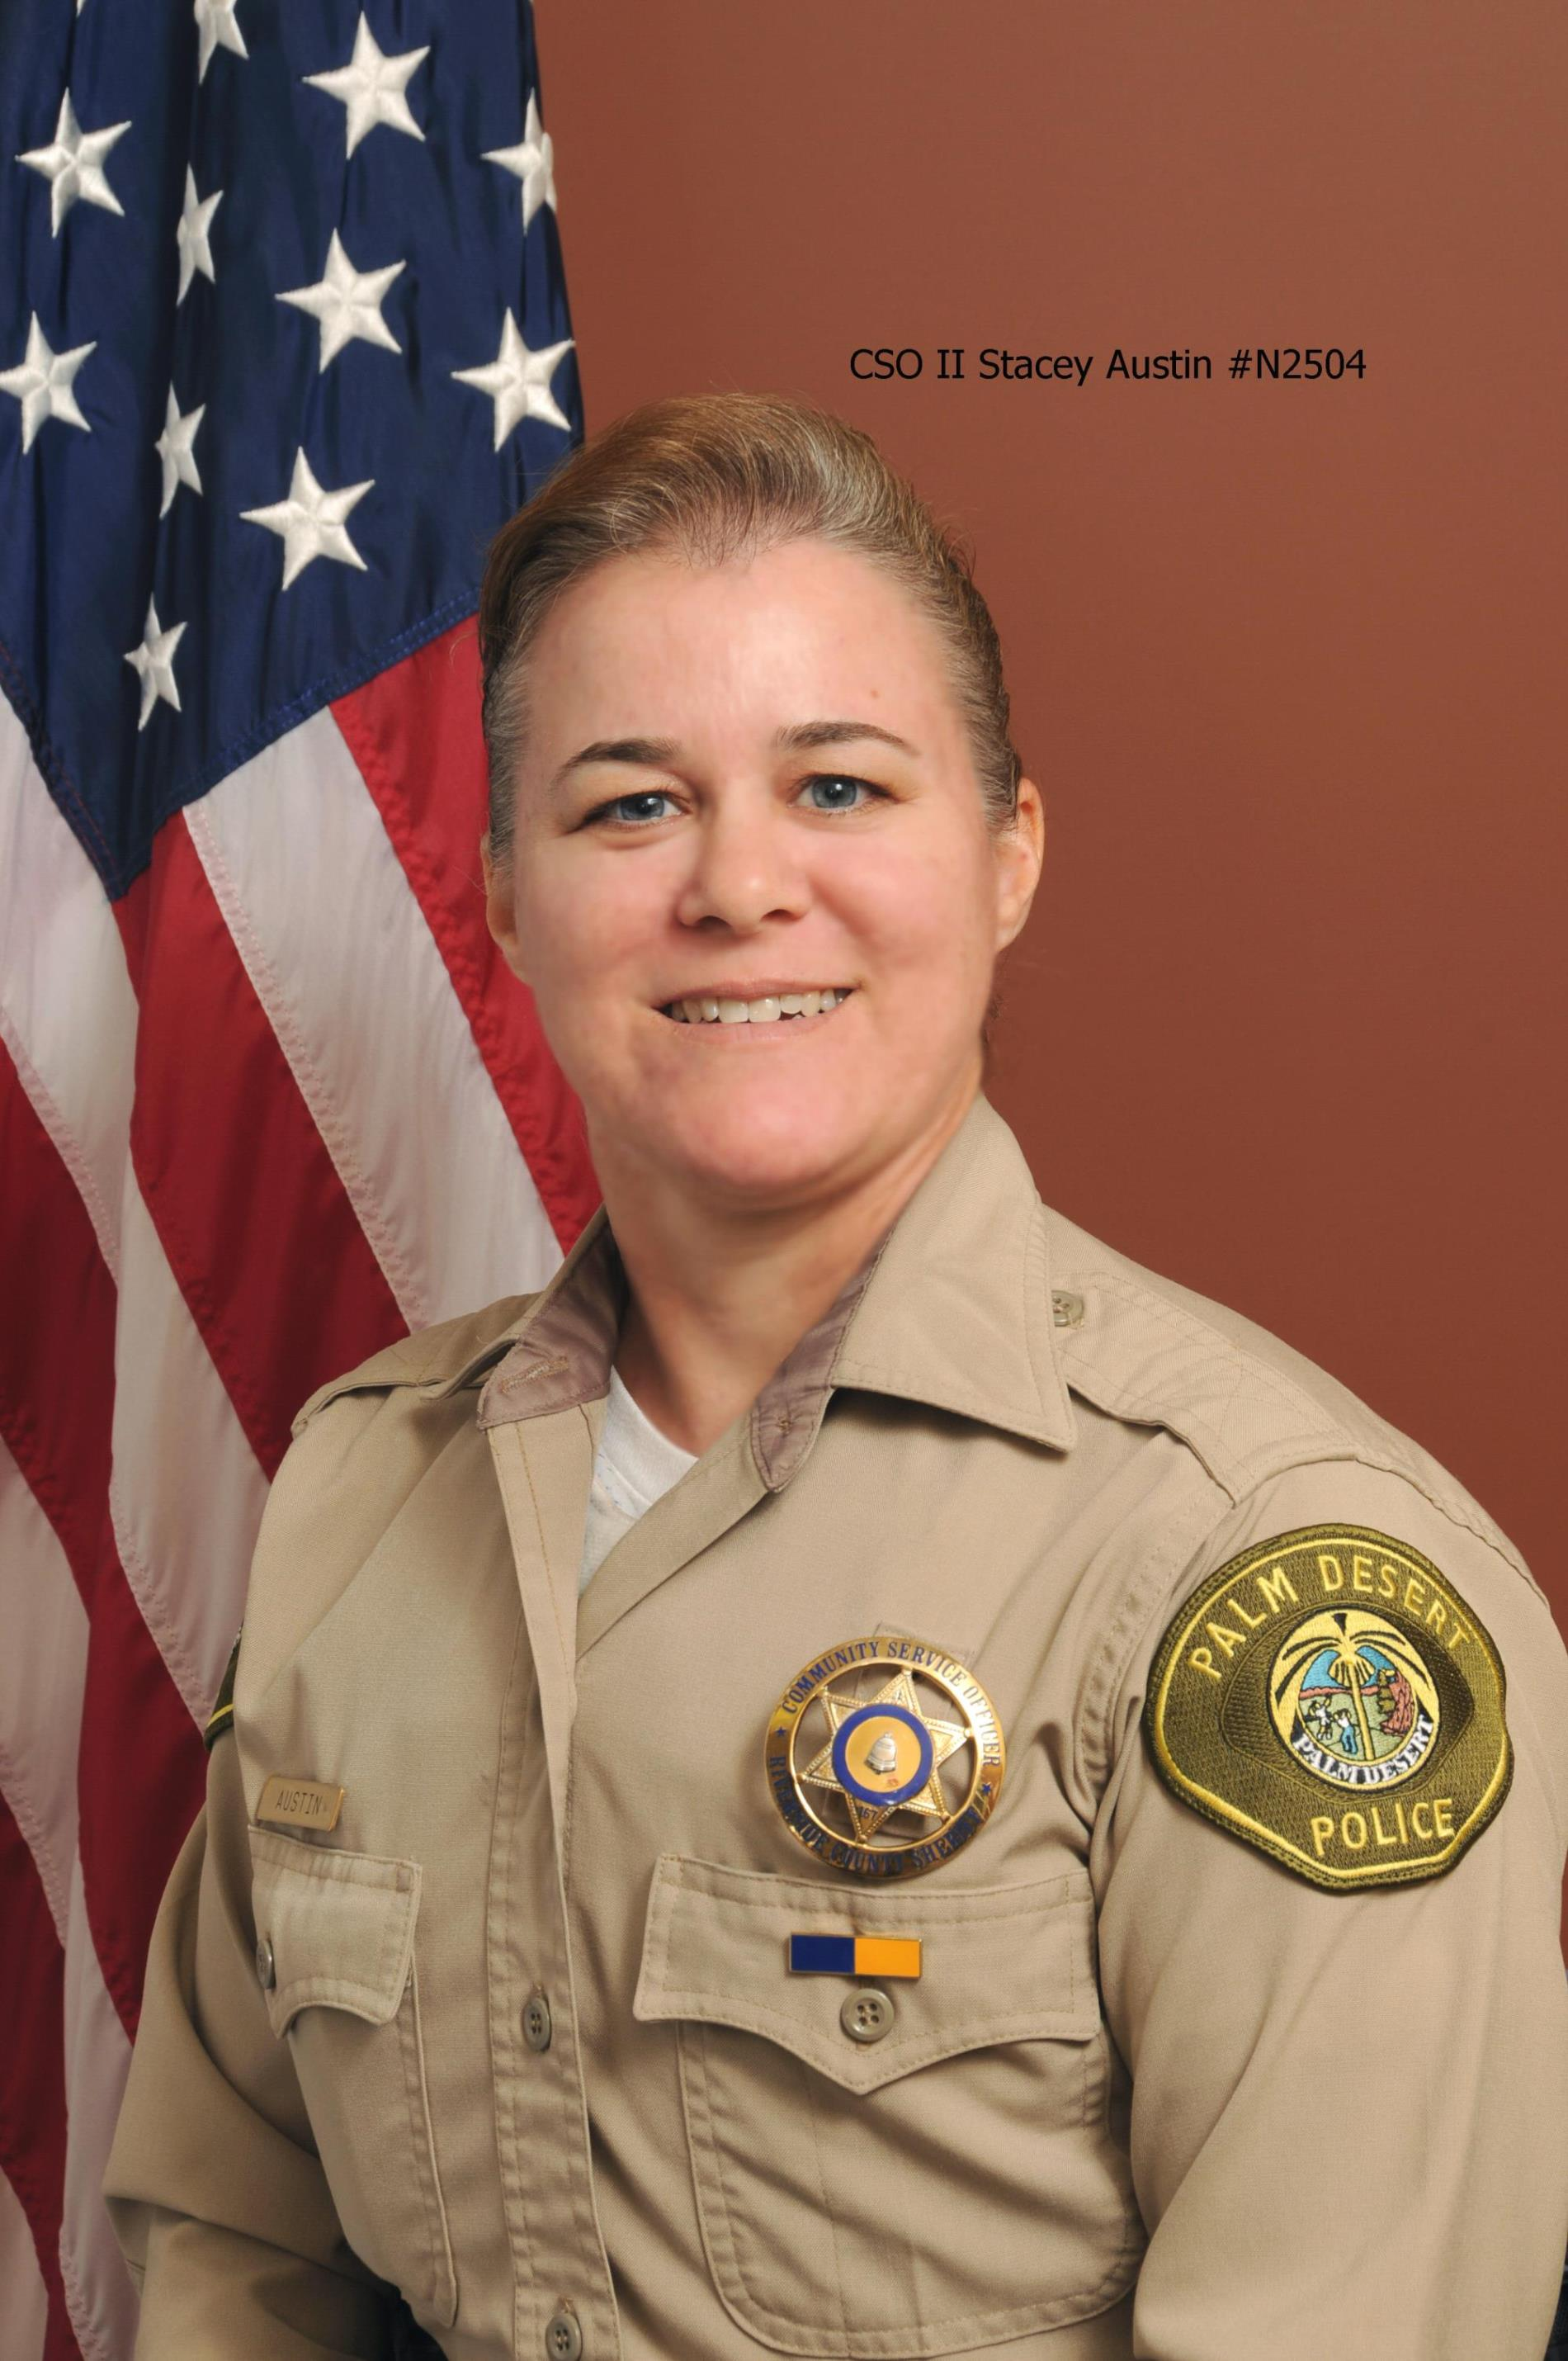 Community Service Officer Stacey Austin